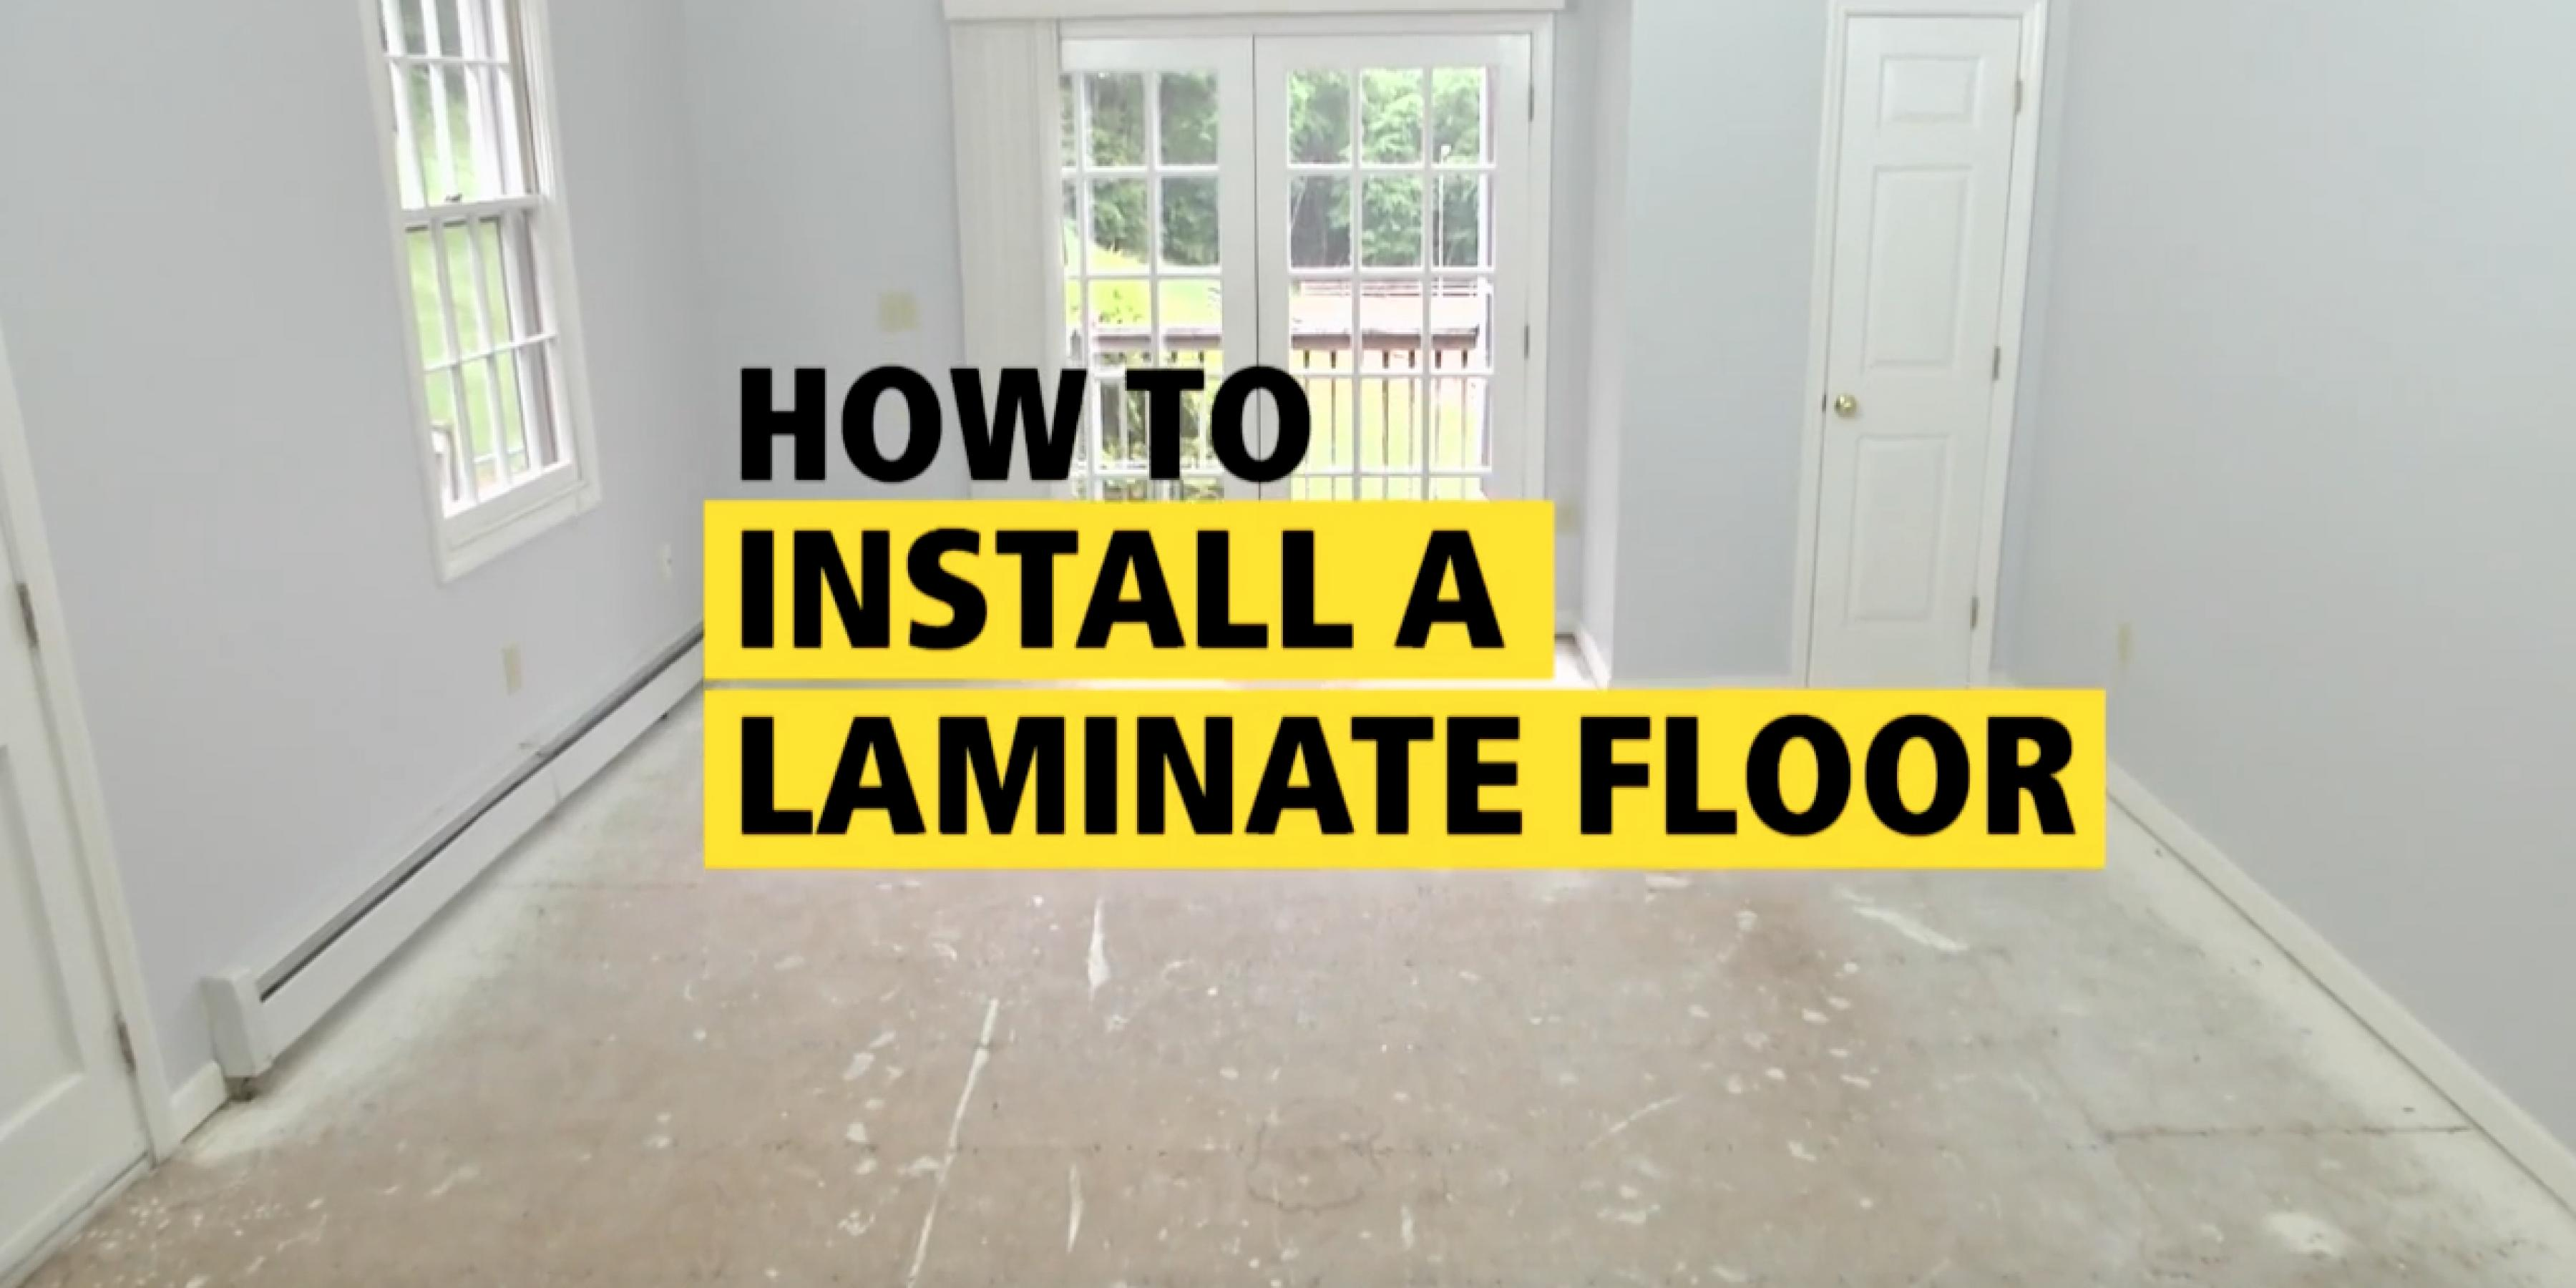 How To Install A Laminate Floor - STANLEY Pro Project Guides